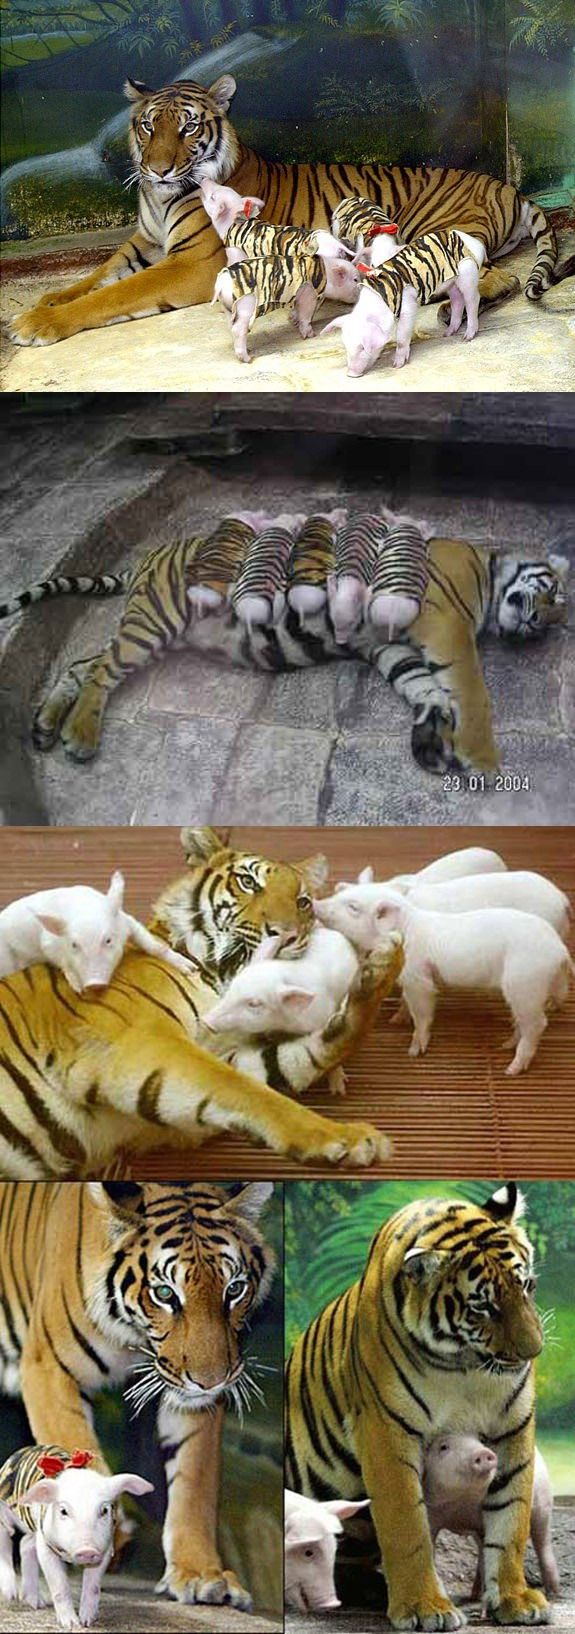 A tiger at  the Sriracha Tiger Zoo , in Thailand, nurses piglets.